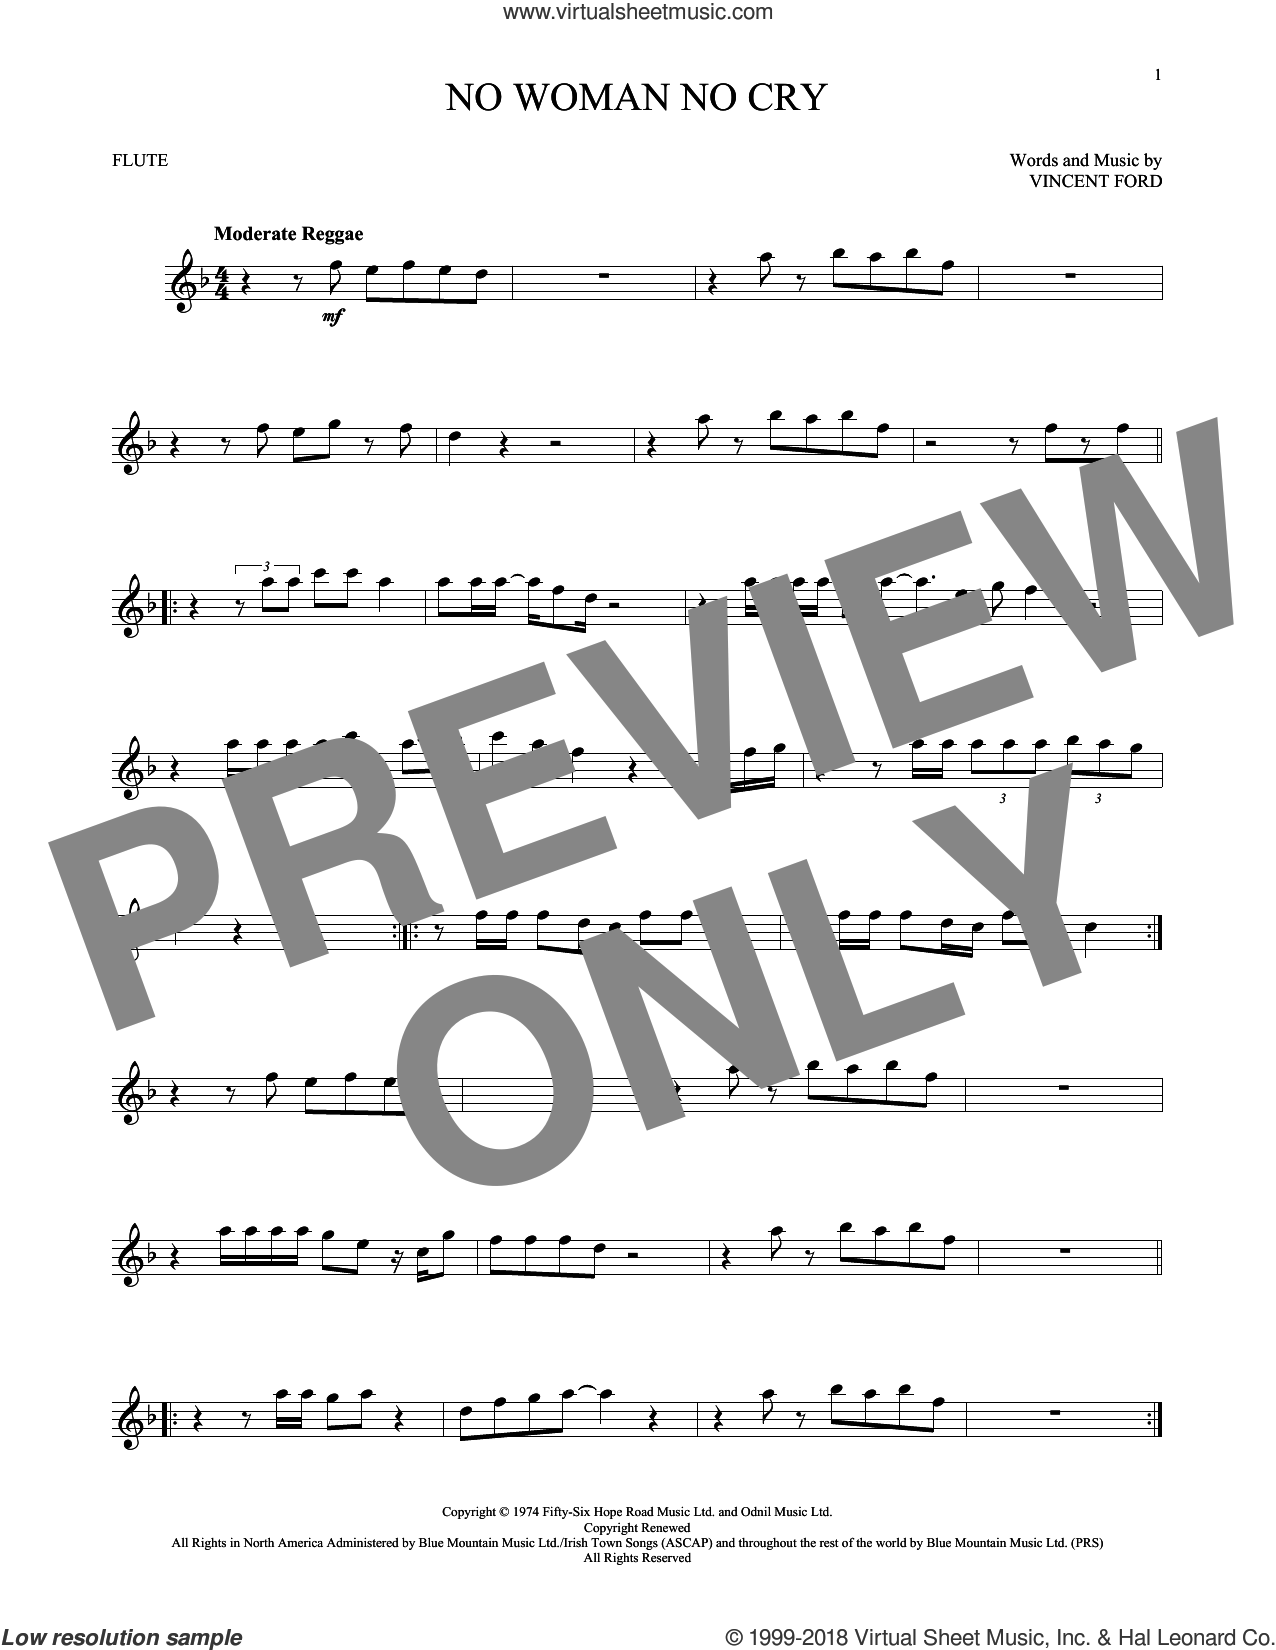 No Woman No Cry sheet music for flute solo by Bob Marley, intermediate skill level